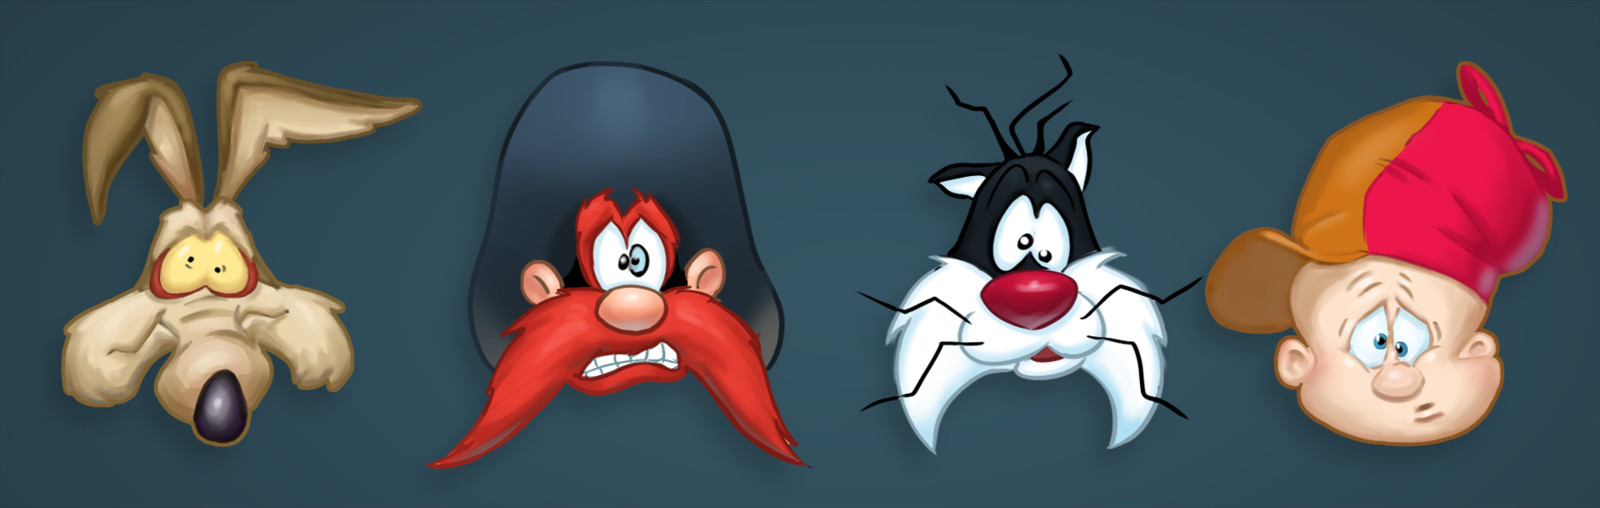 Chump the Chaser icons for Looney Tunes Dash